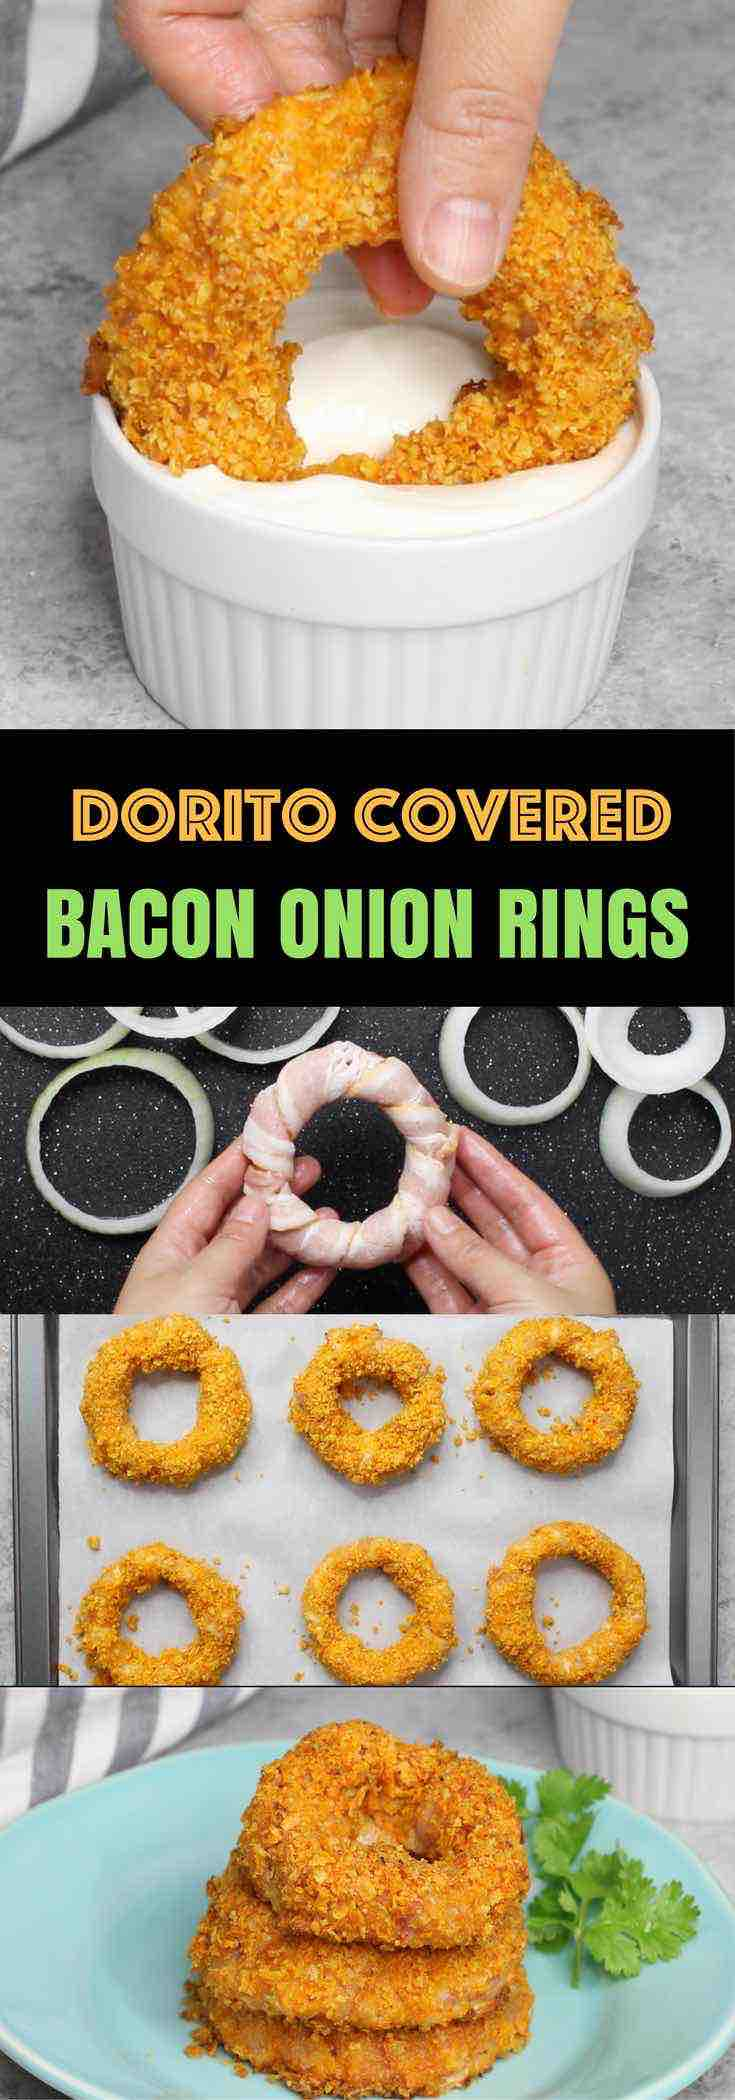 Bacon Onion Rings with a Doritos Crust - crispy on the outside with delicious smokey flavors! Perfect as a party appetizer for Game Day and holidays.